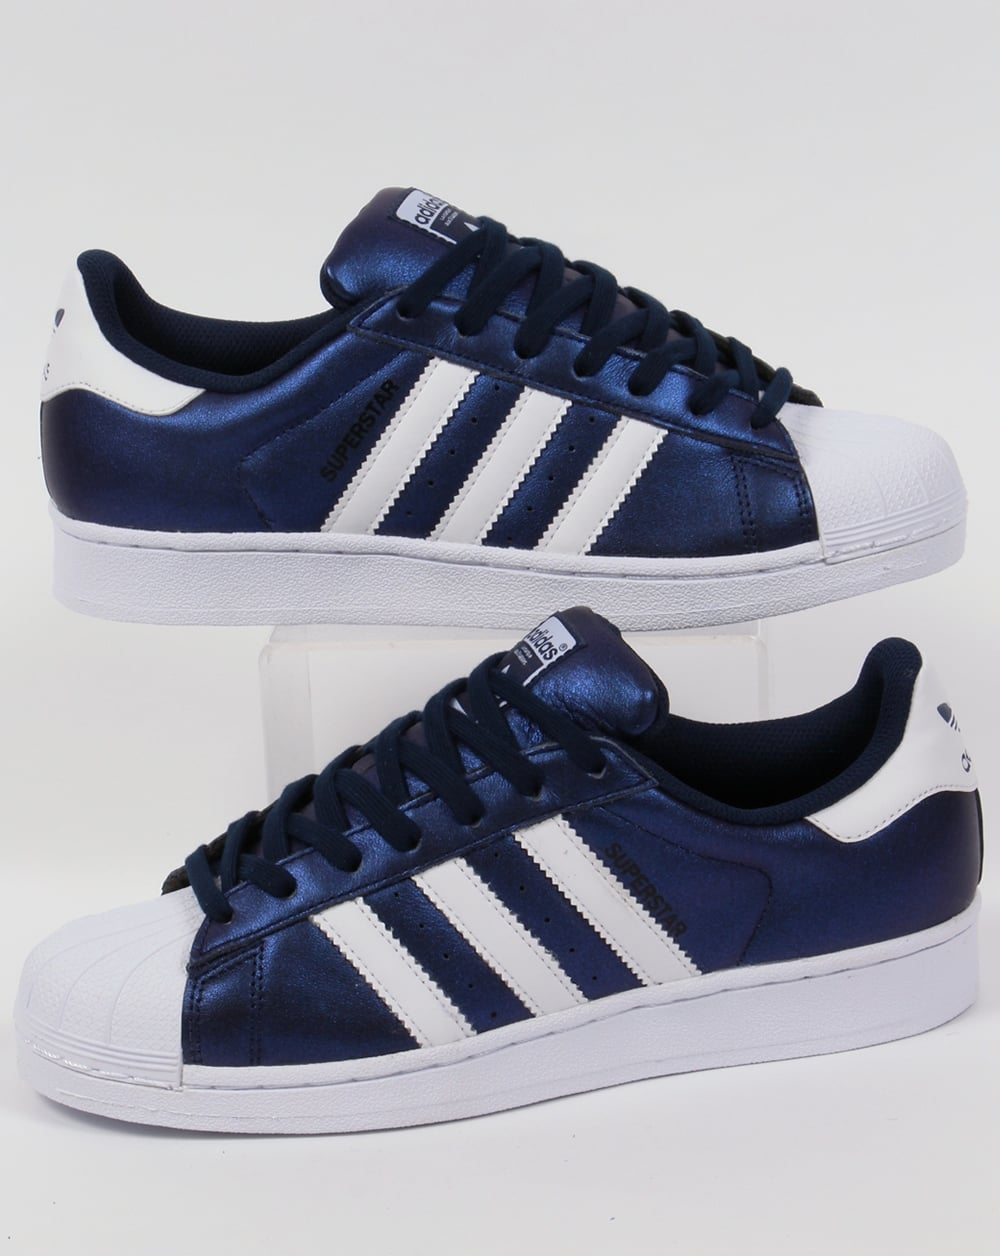 d5357a652692 adidas Trainers Adidas Superstar Trainers Bold Blue White